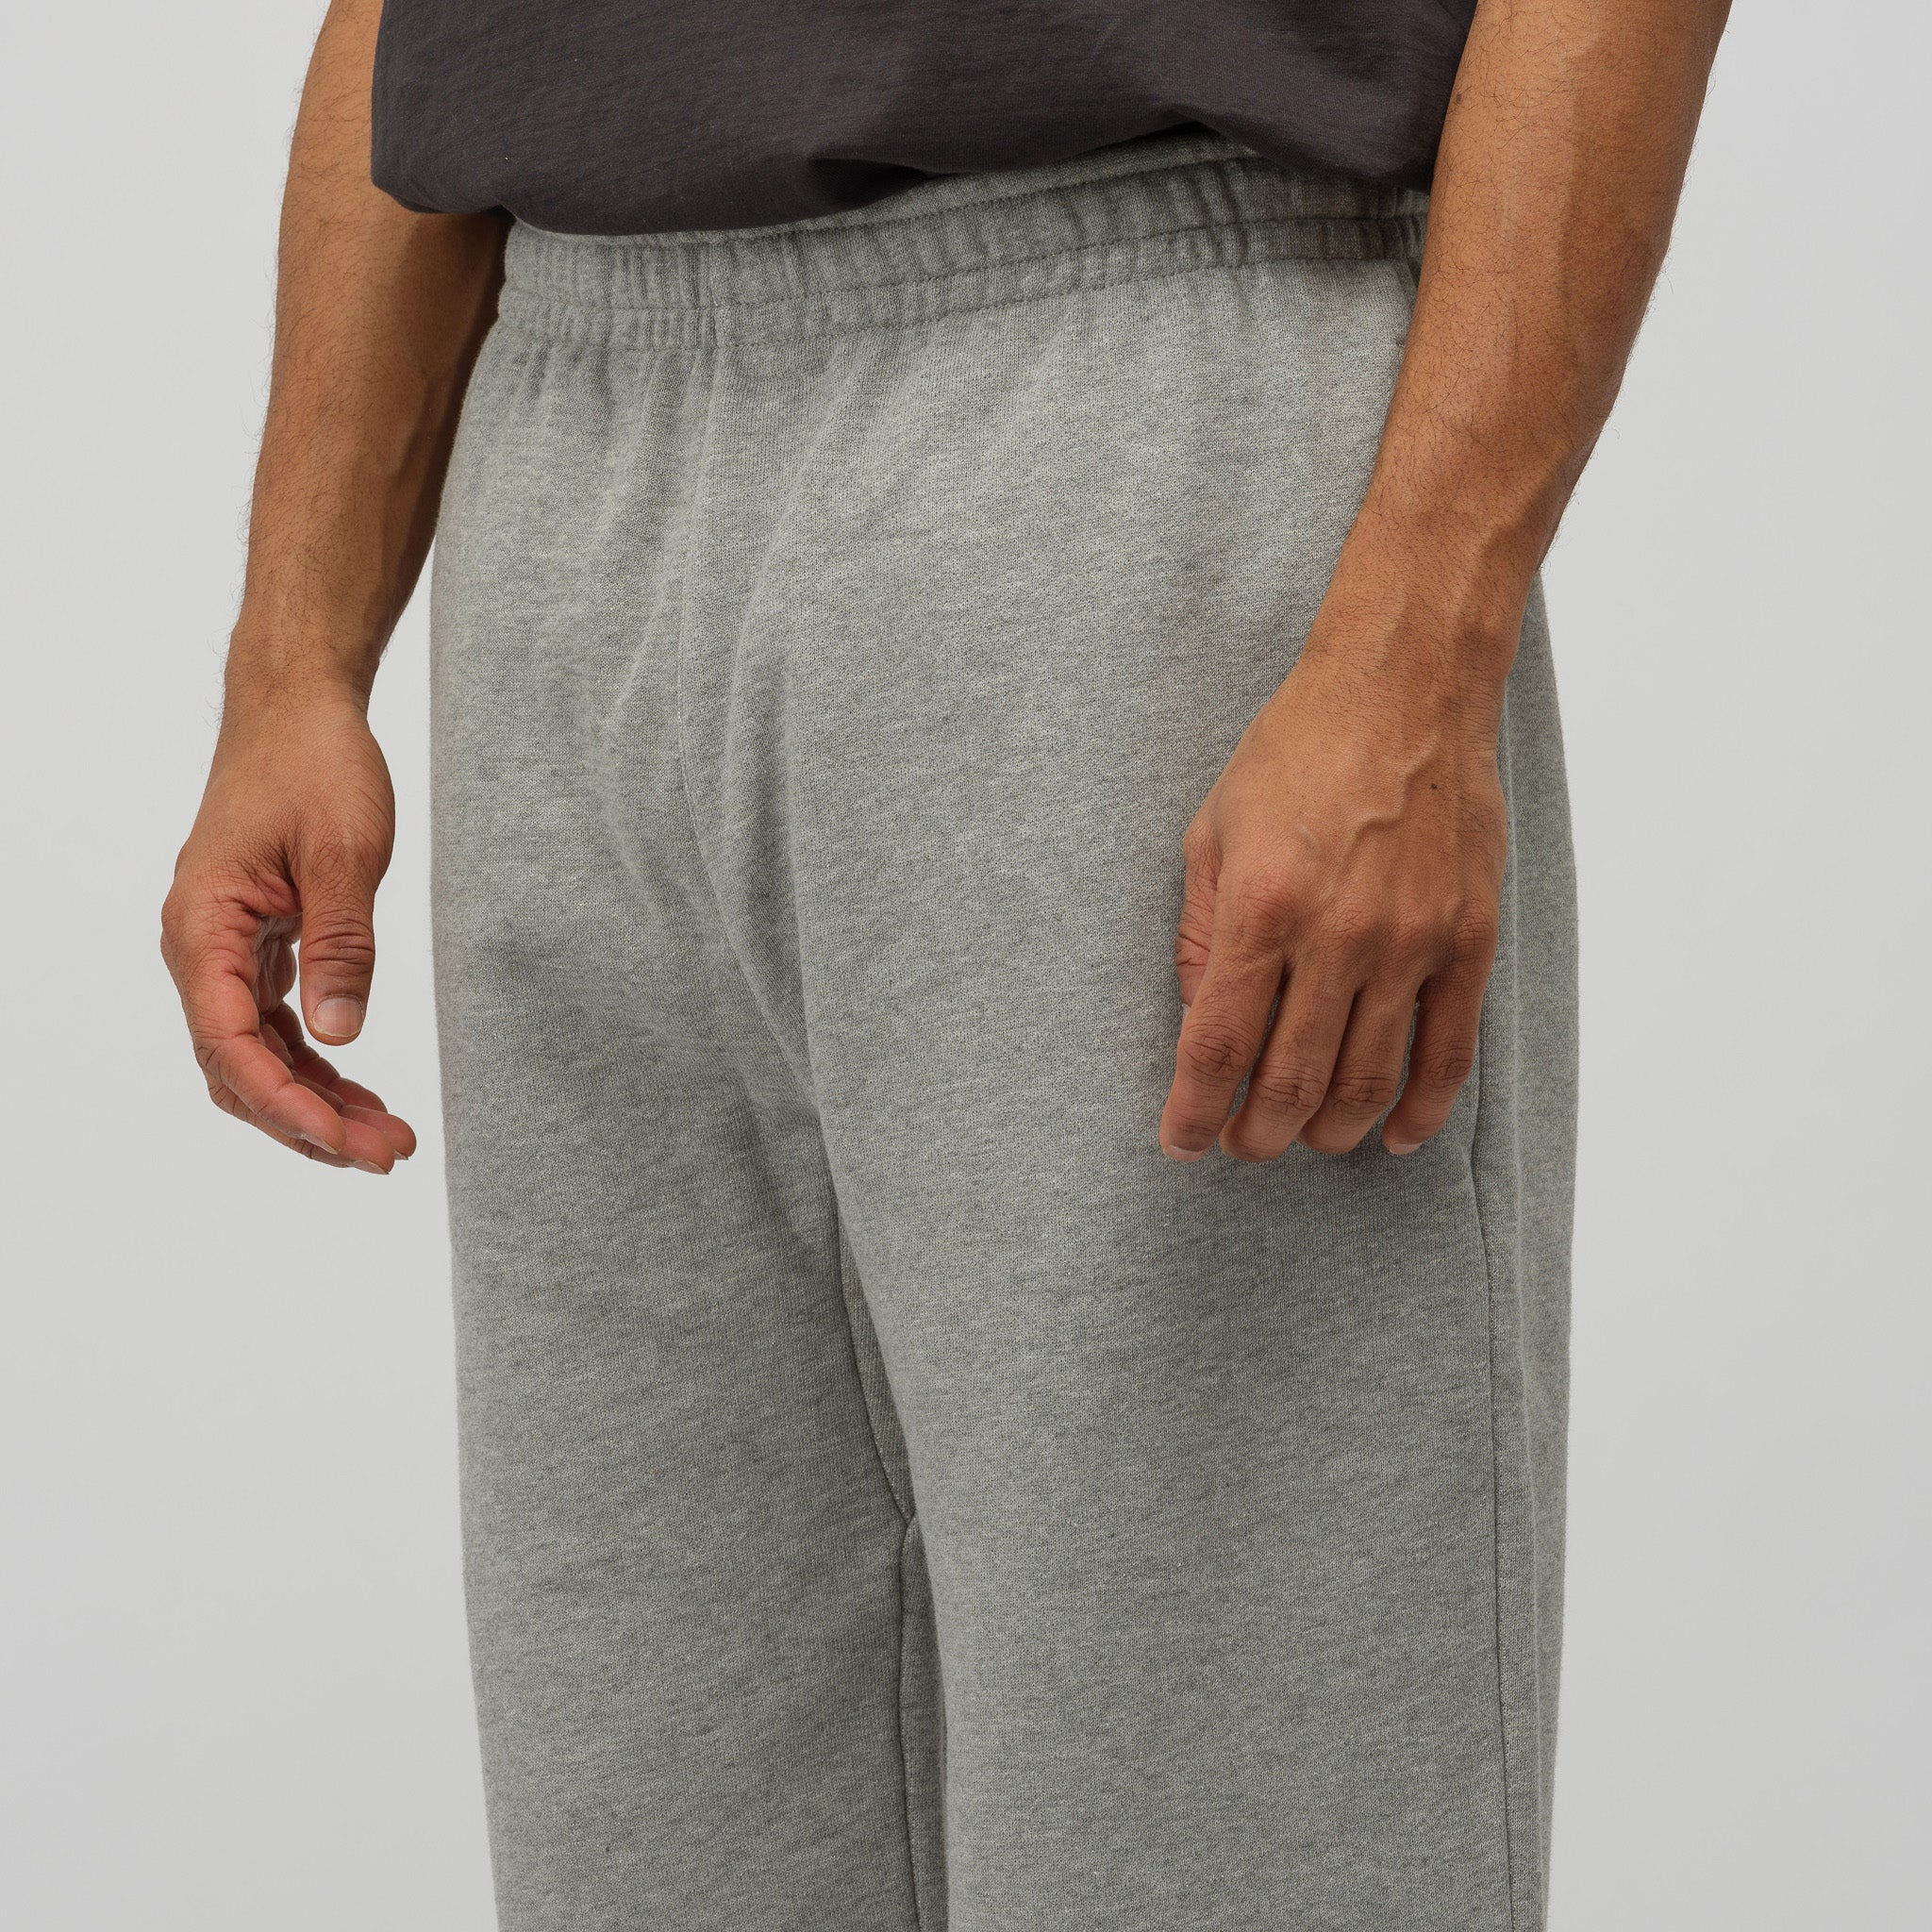 x A$AP Nast Sweatpant in Heather Grey